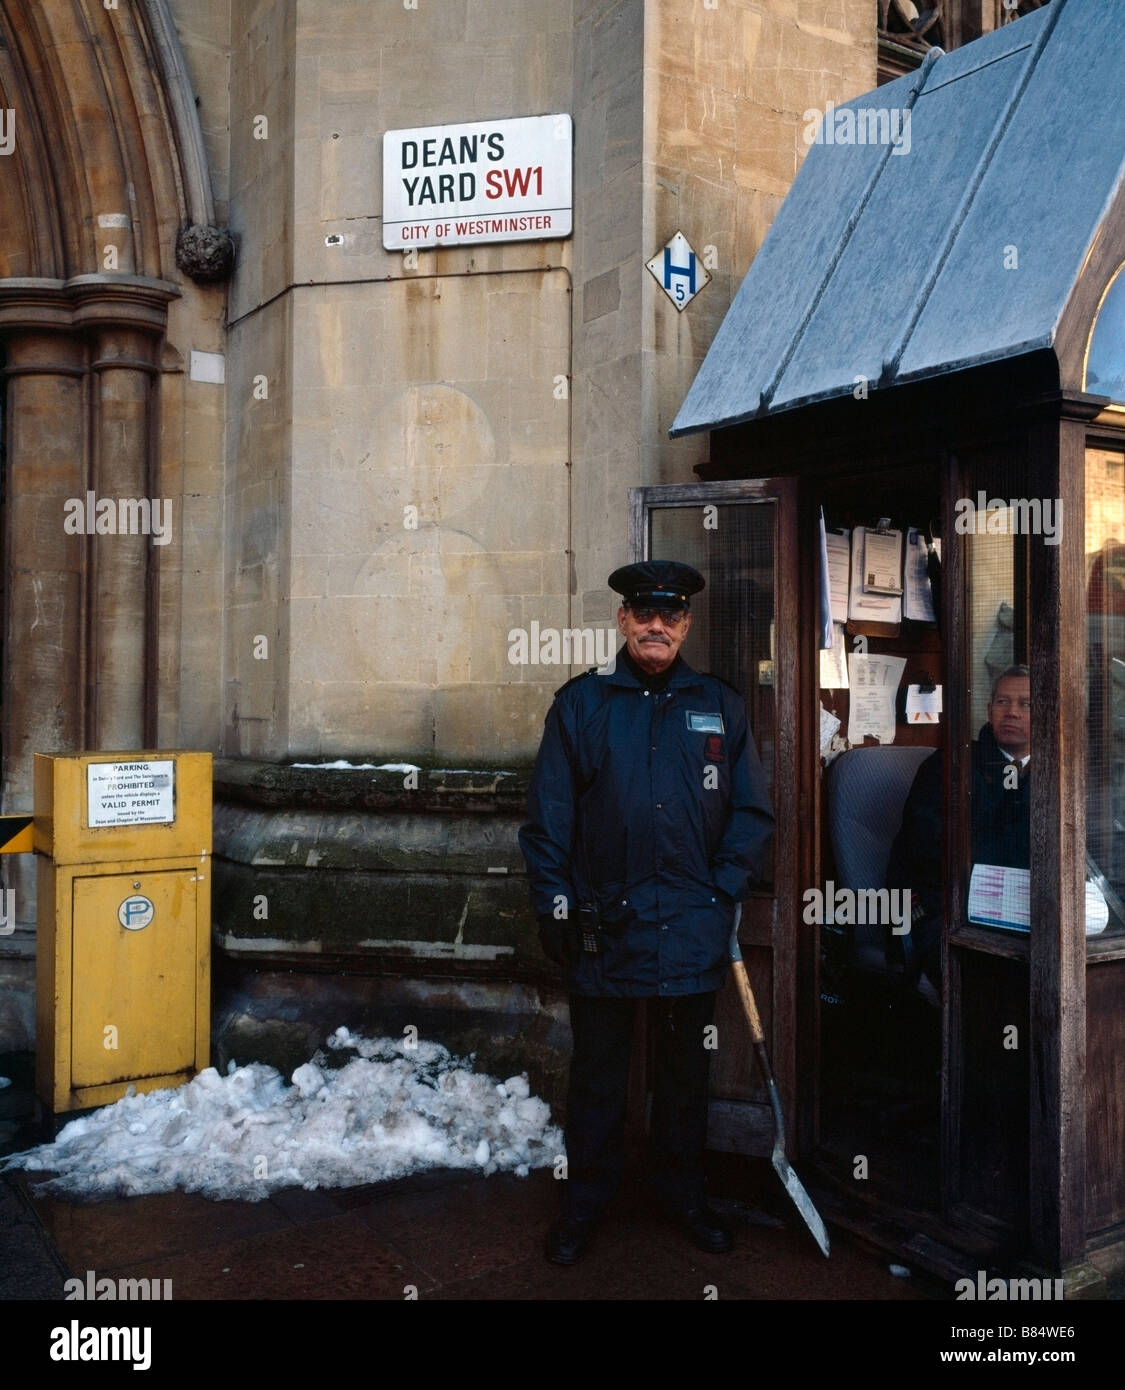 Security guards at Deans Yard. Westminster, London, England, UK. - Stock Image